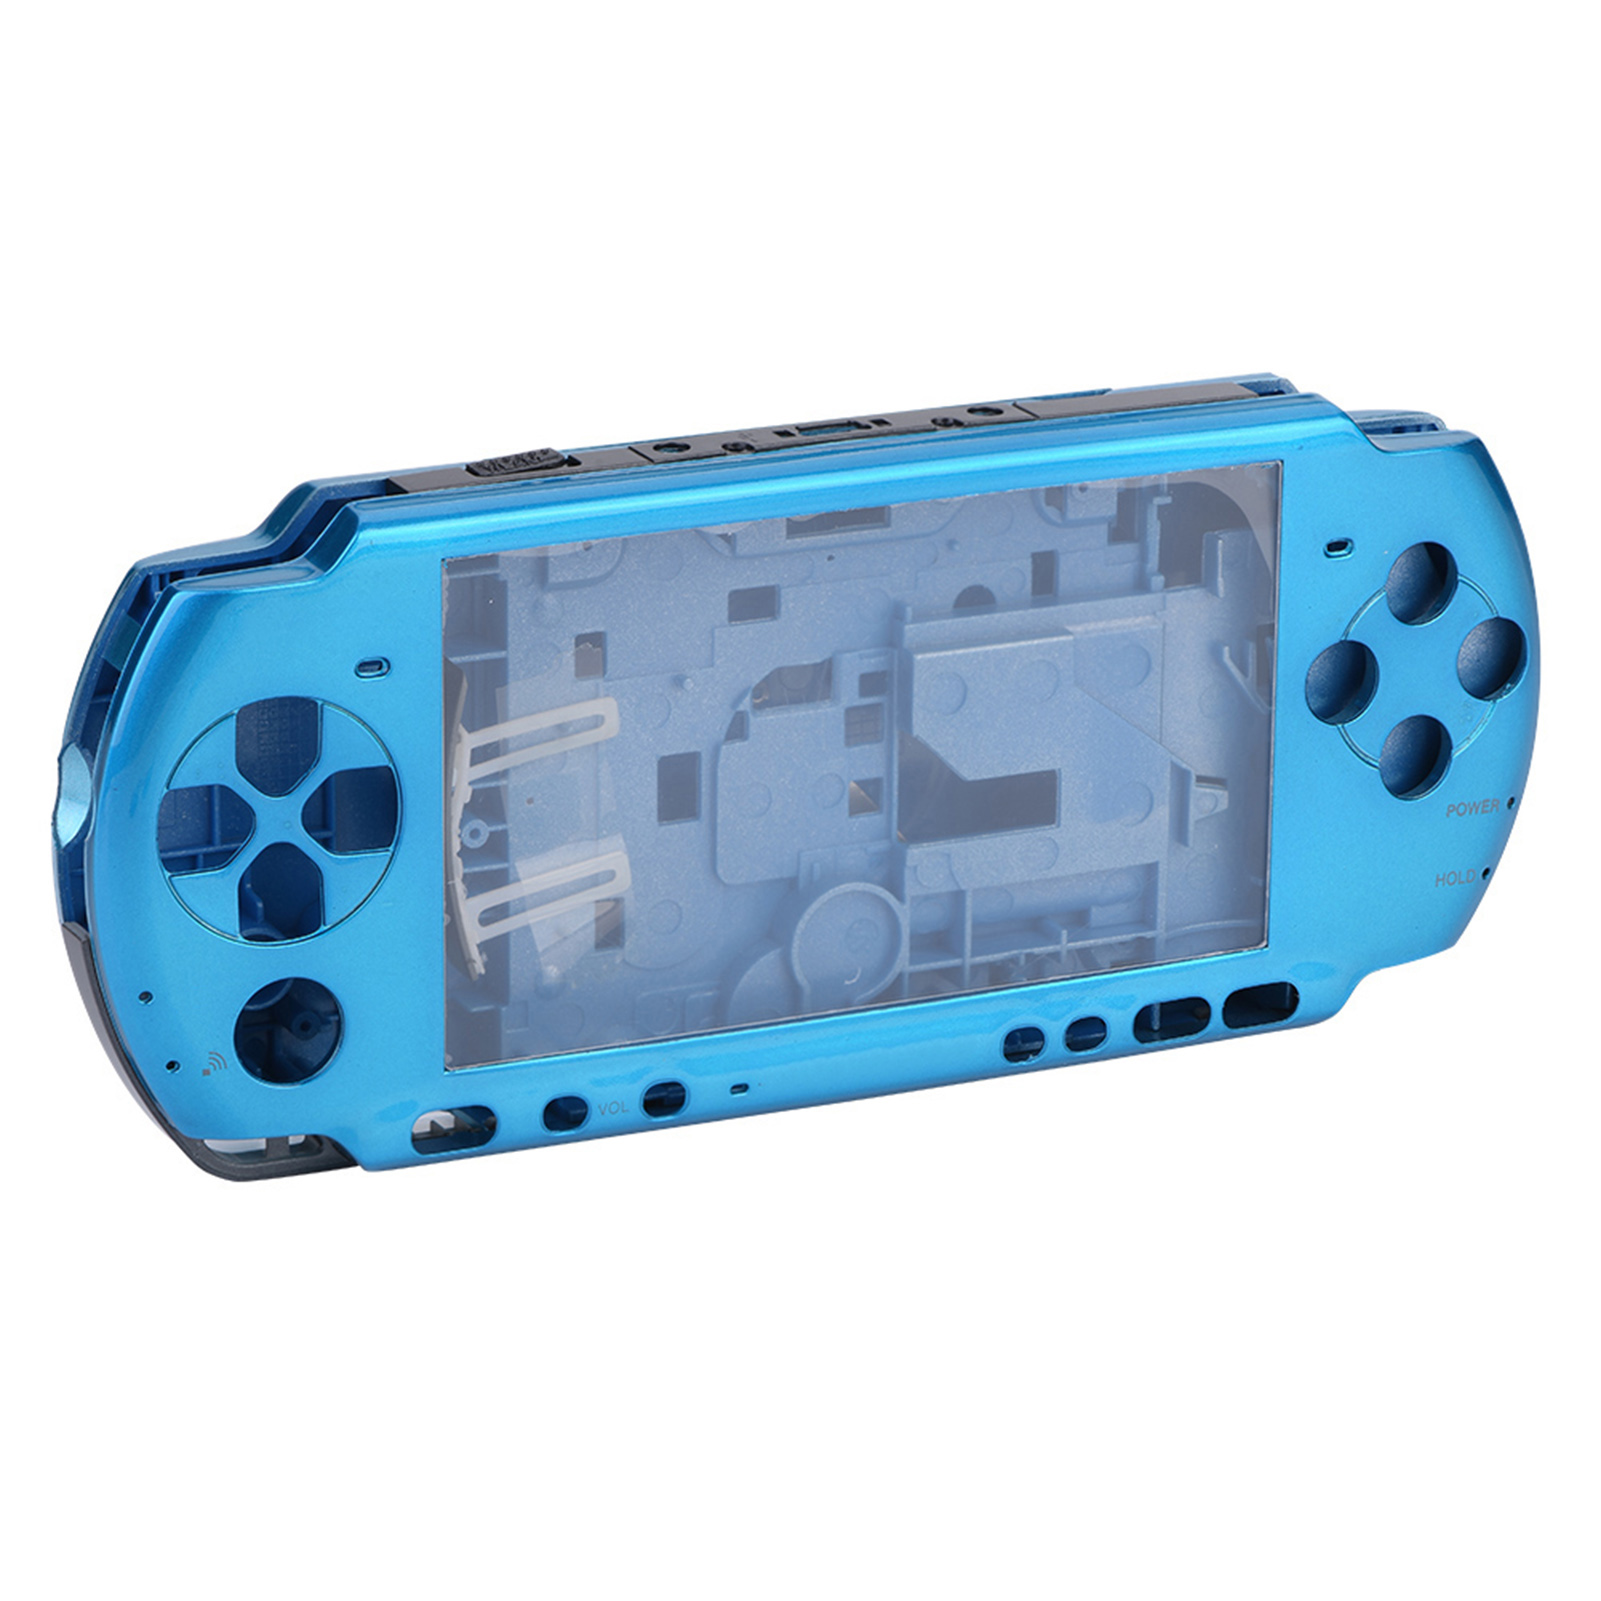 Full-Housing-Shell-Case-Cover-Faceplate-Set-Repair-Part-for-PSP-3000-Slim-Series thumbnail 24